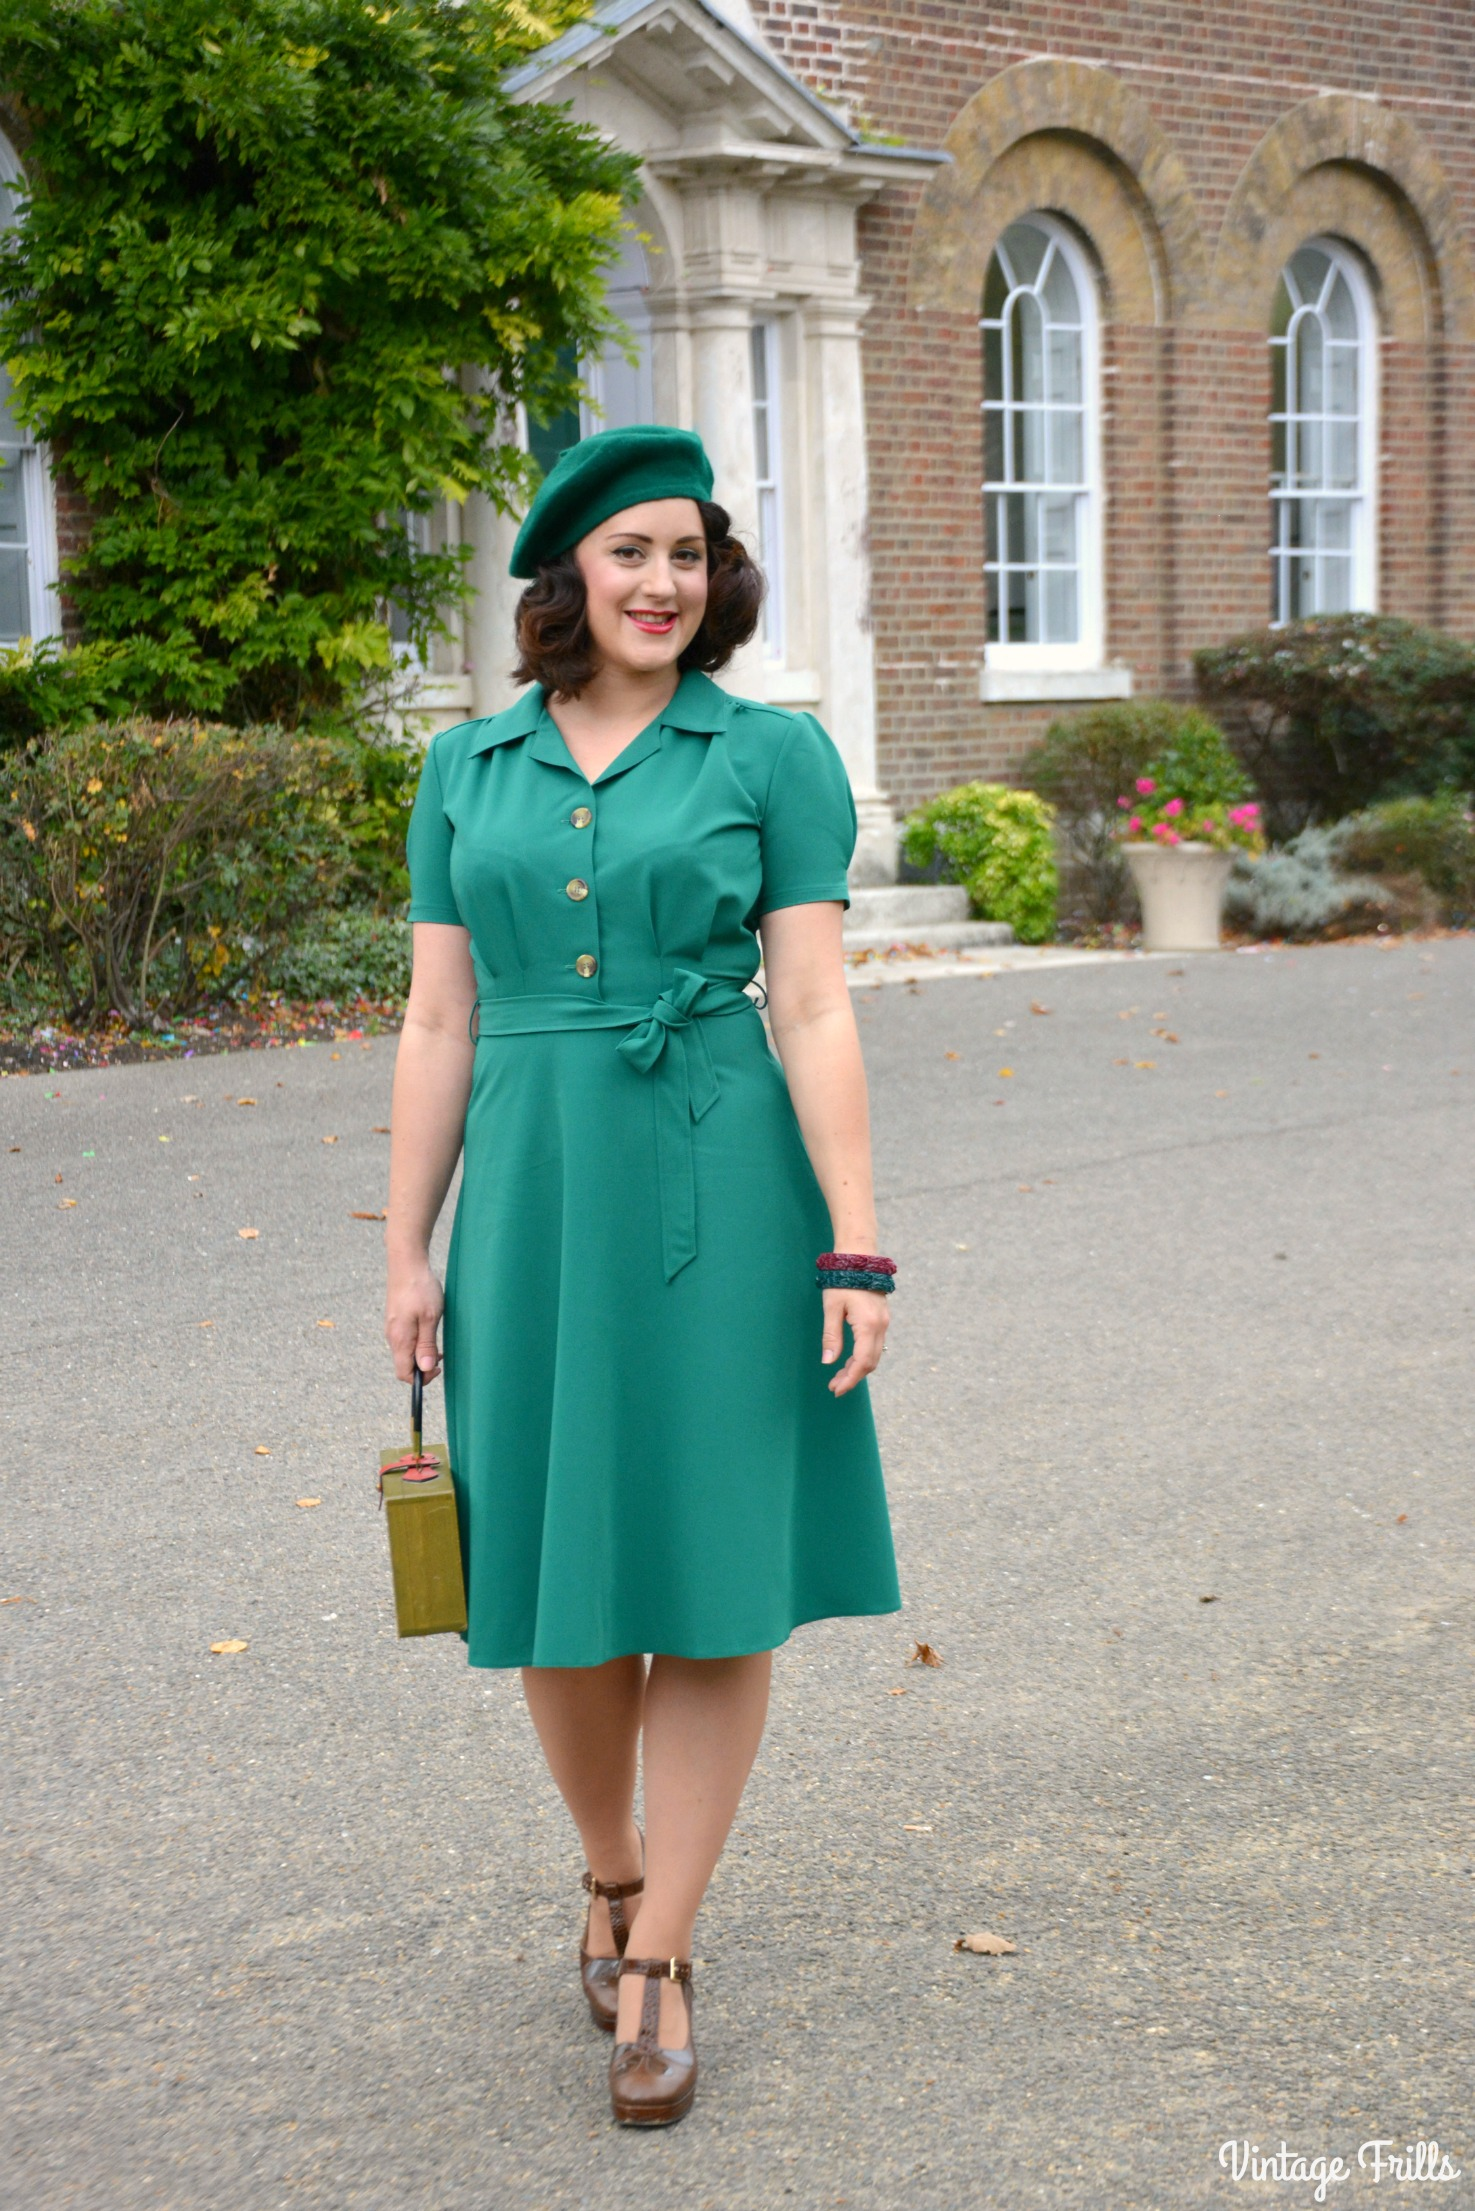 1940s Day Wear: The Perfect 1940s Style Dress From Pretty Retro OOTD